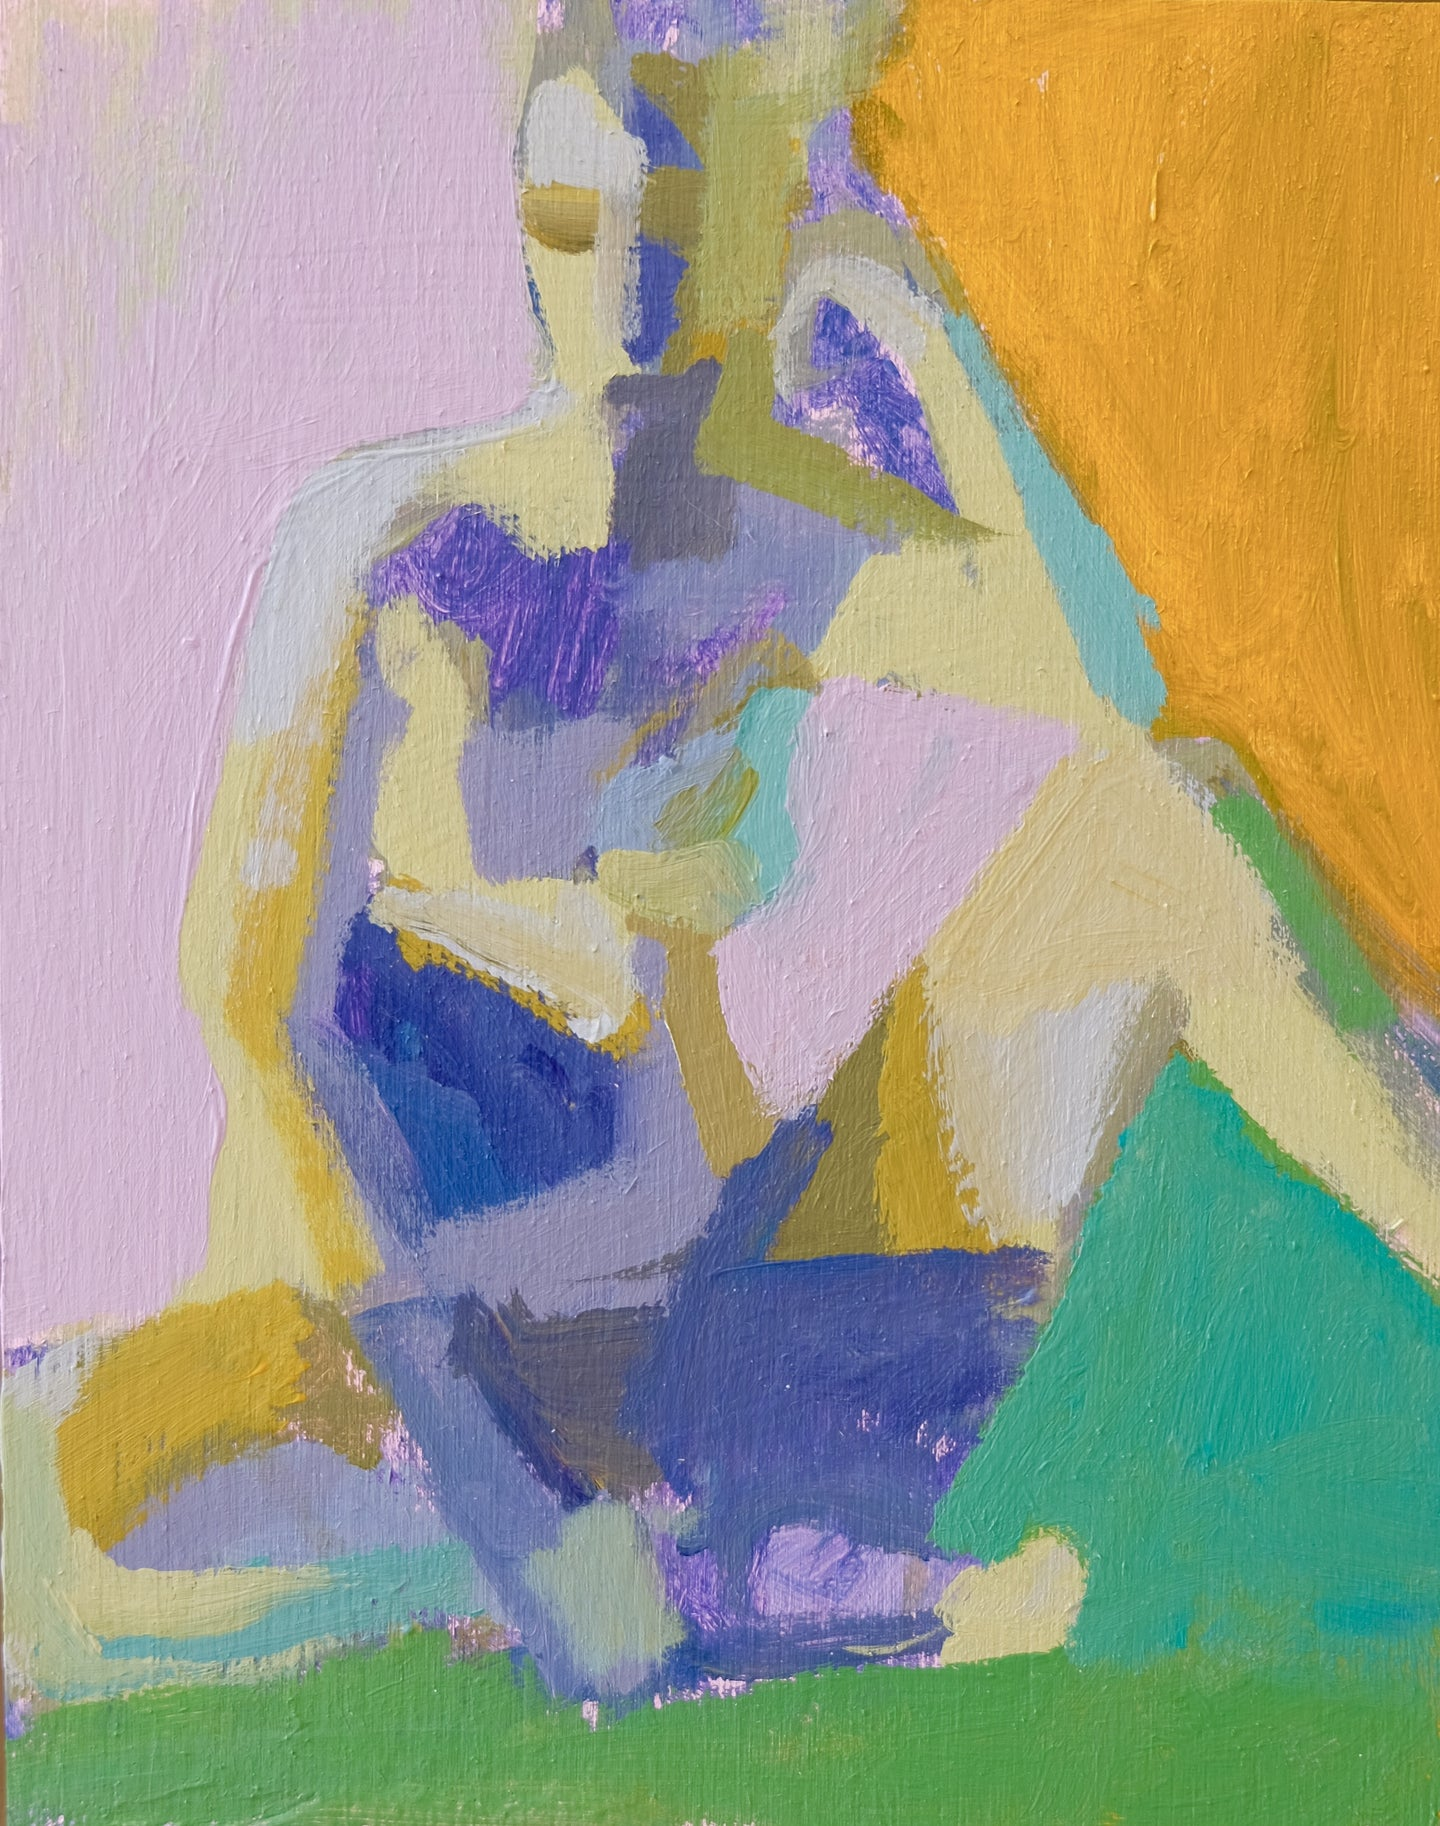 Summer Figure Study No. 7, 8